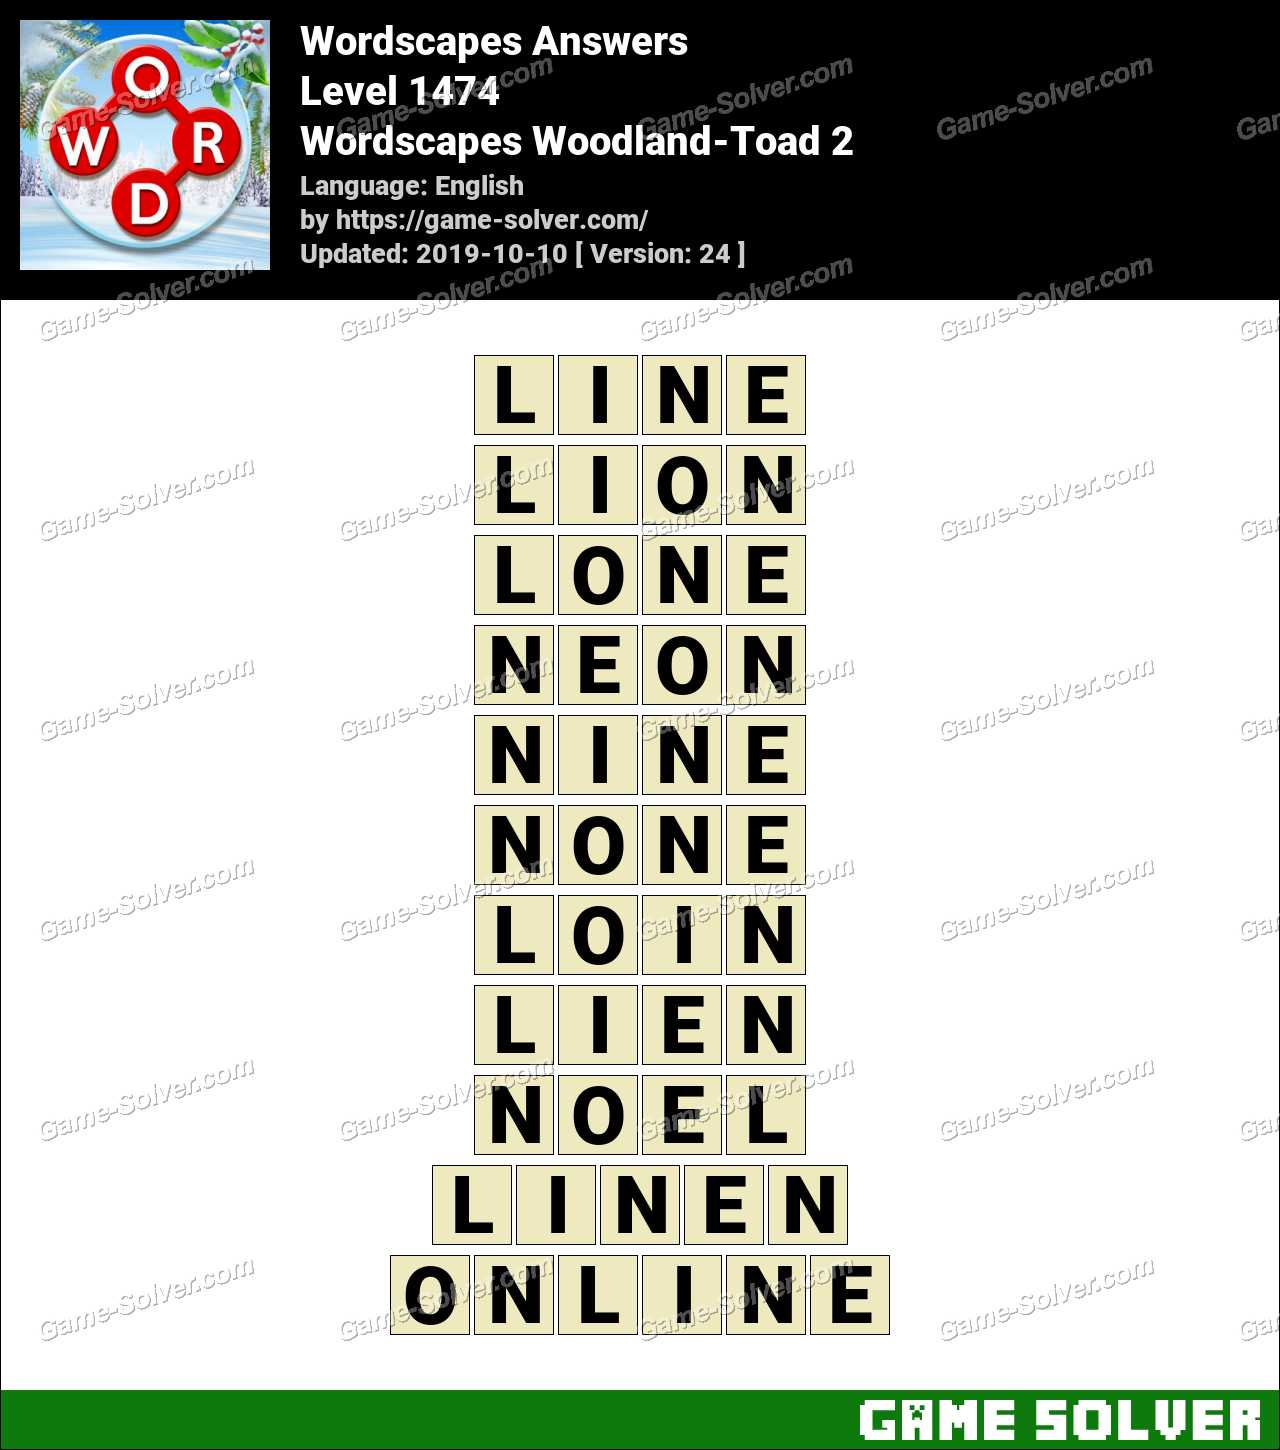 Wordscapes Woodland-Toad 2 Answers